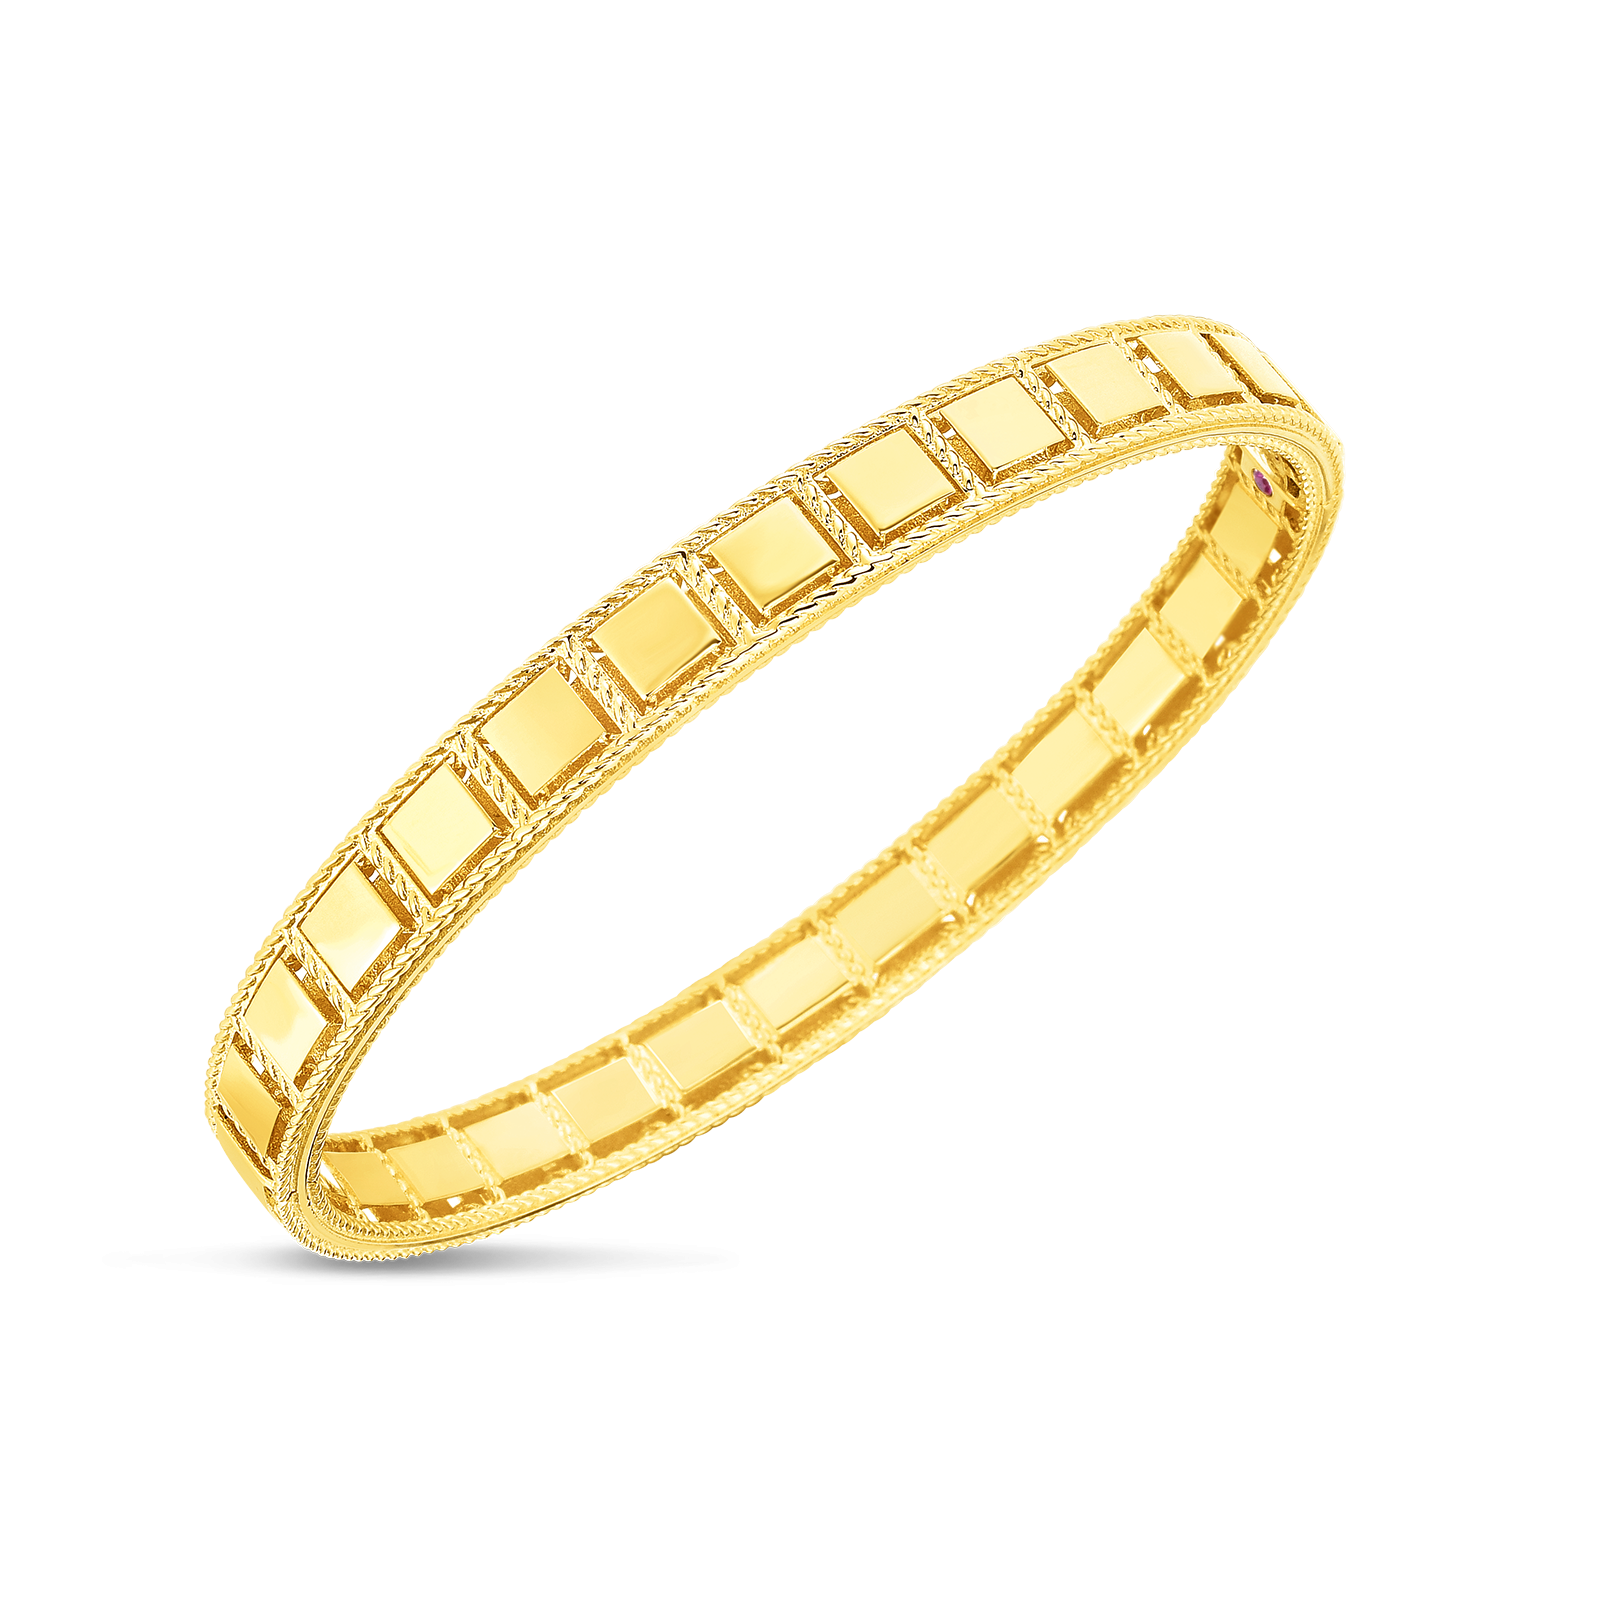 Roberto Coin Roman Barocco Bangle in 18K Gold